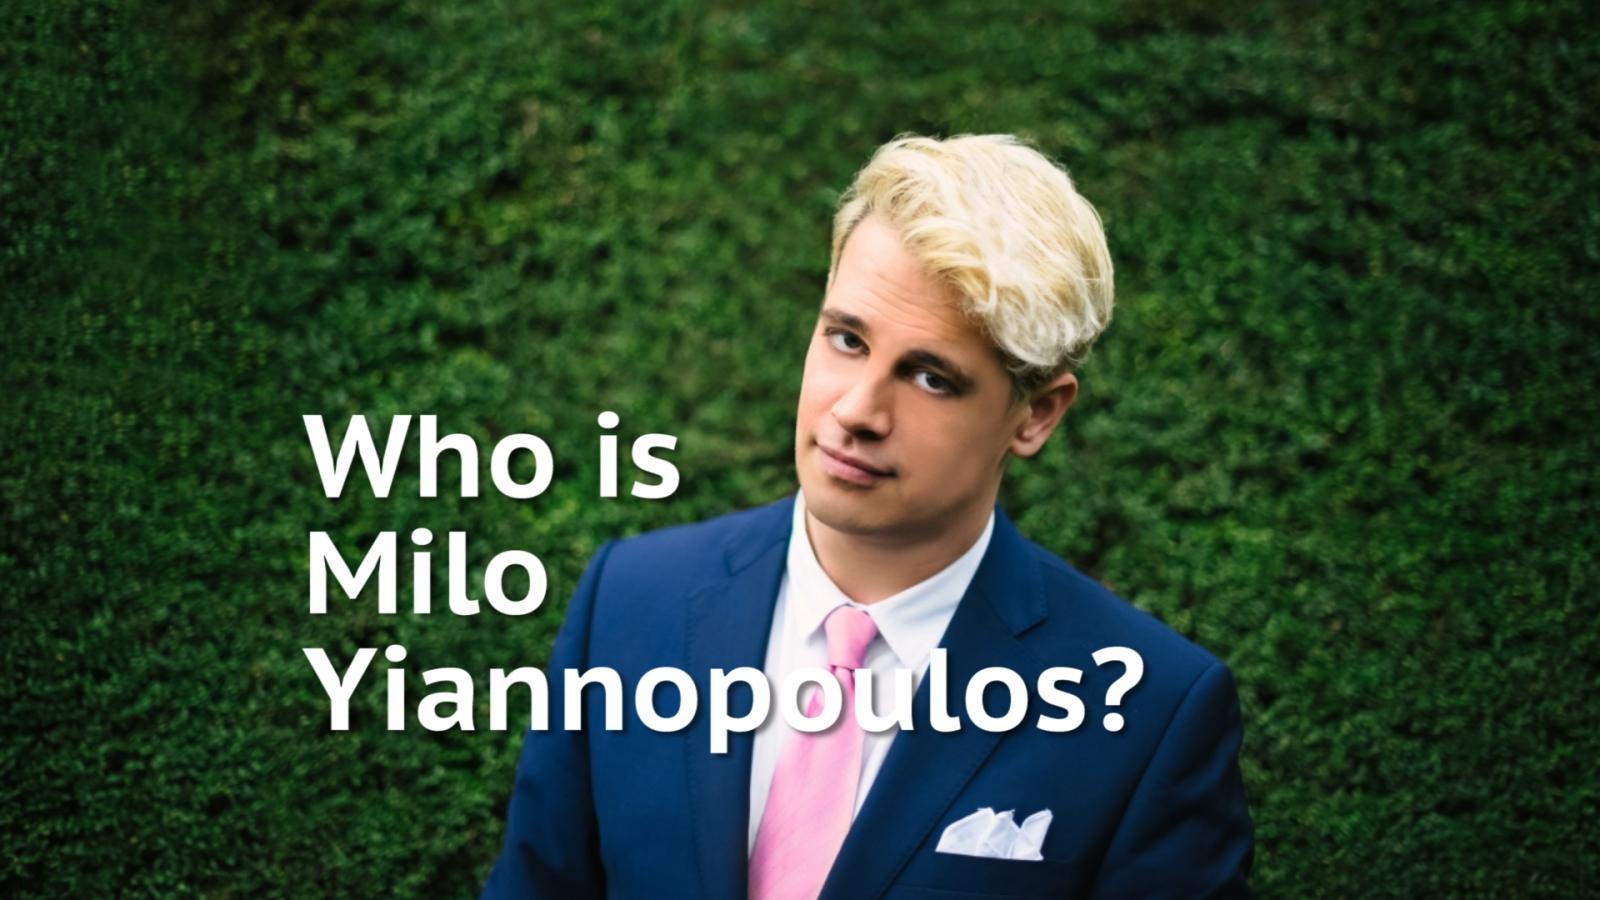 milo yiannopoulos racism and hate speech And we ask that she ban him from speaking on campus and release a public statement explaining why this sort of hate speech will not be tolerated milo yiannopoulos has been banned from schools and online platforms before, for egregious harassment , bigotry , condoning sexual violence , and inciting his followers to engage in similar acts of .